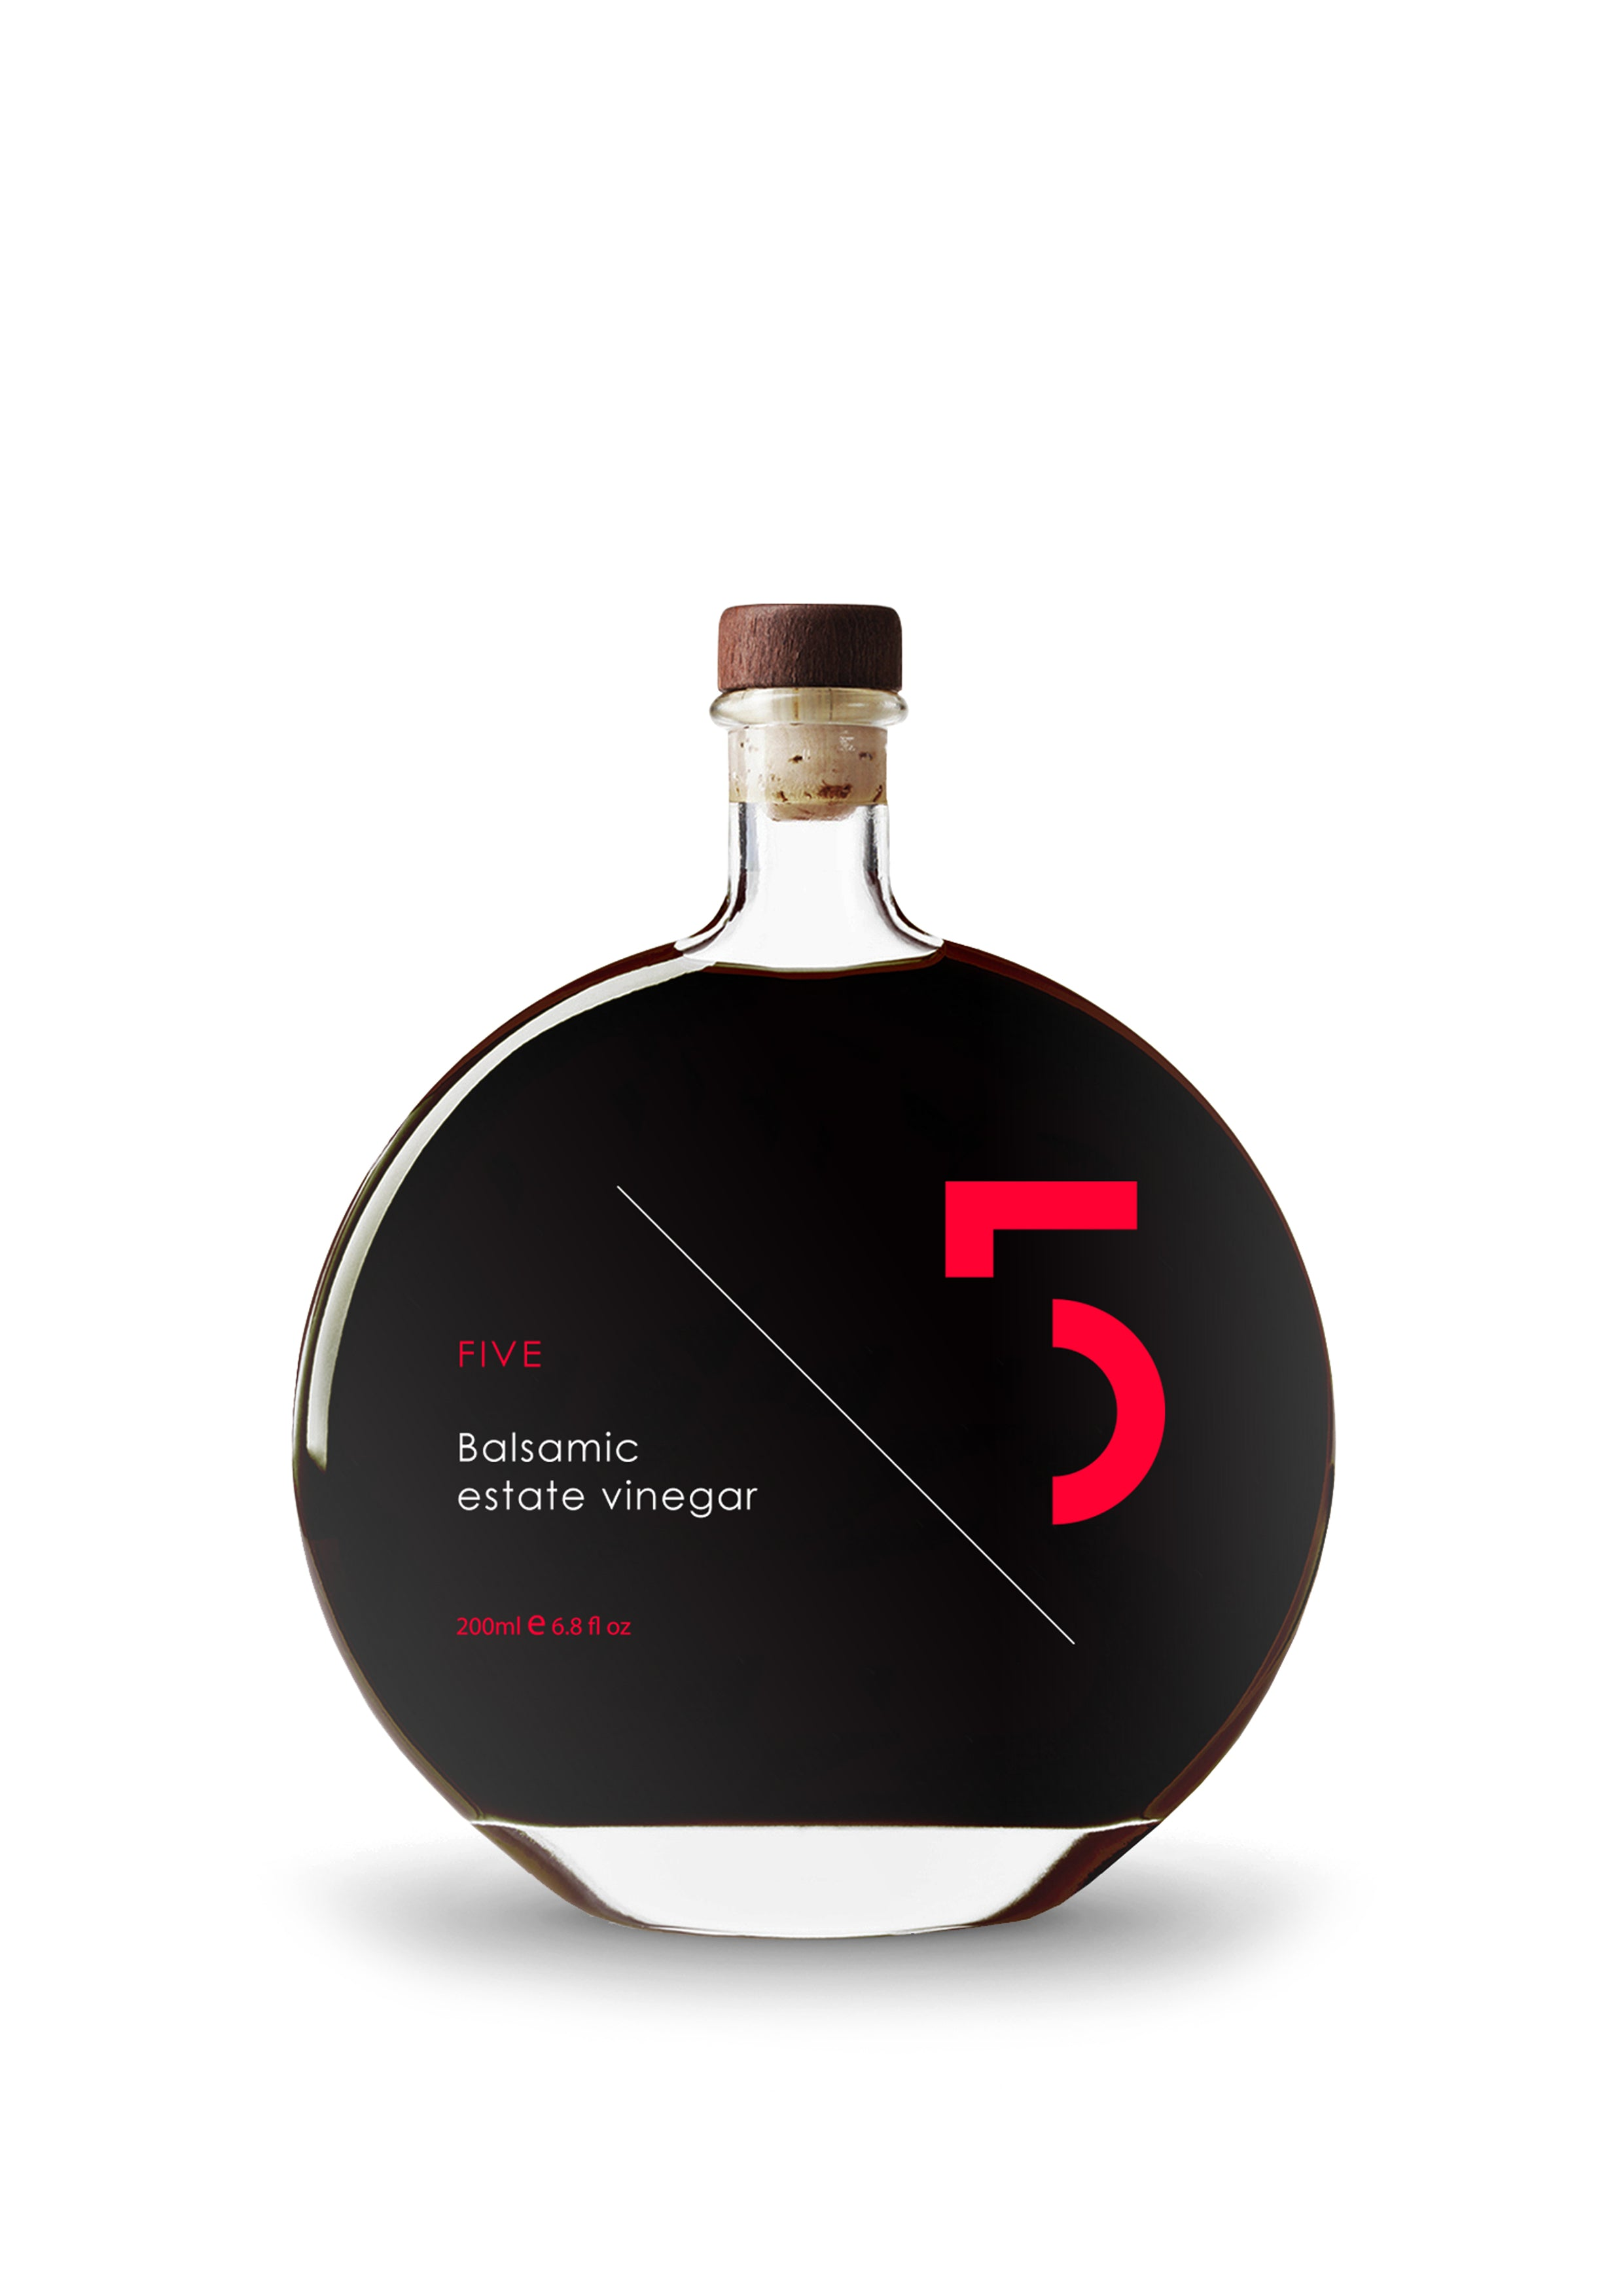 BALSAMIC ESTATE VINEGAR by FIVE